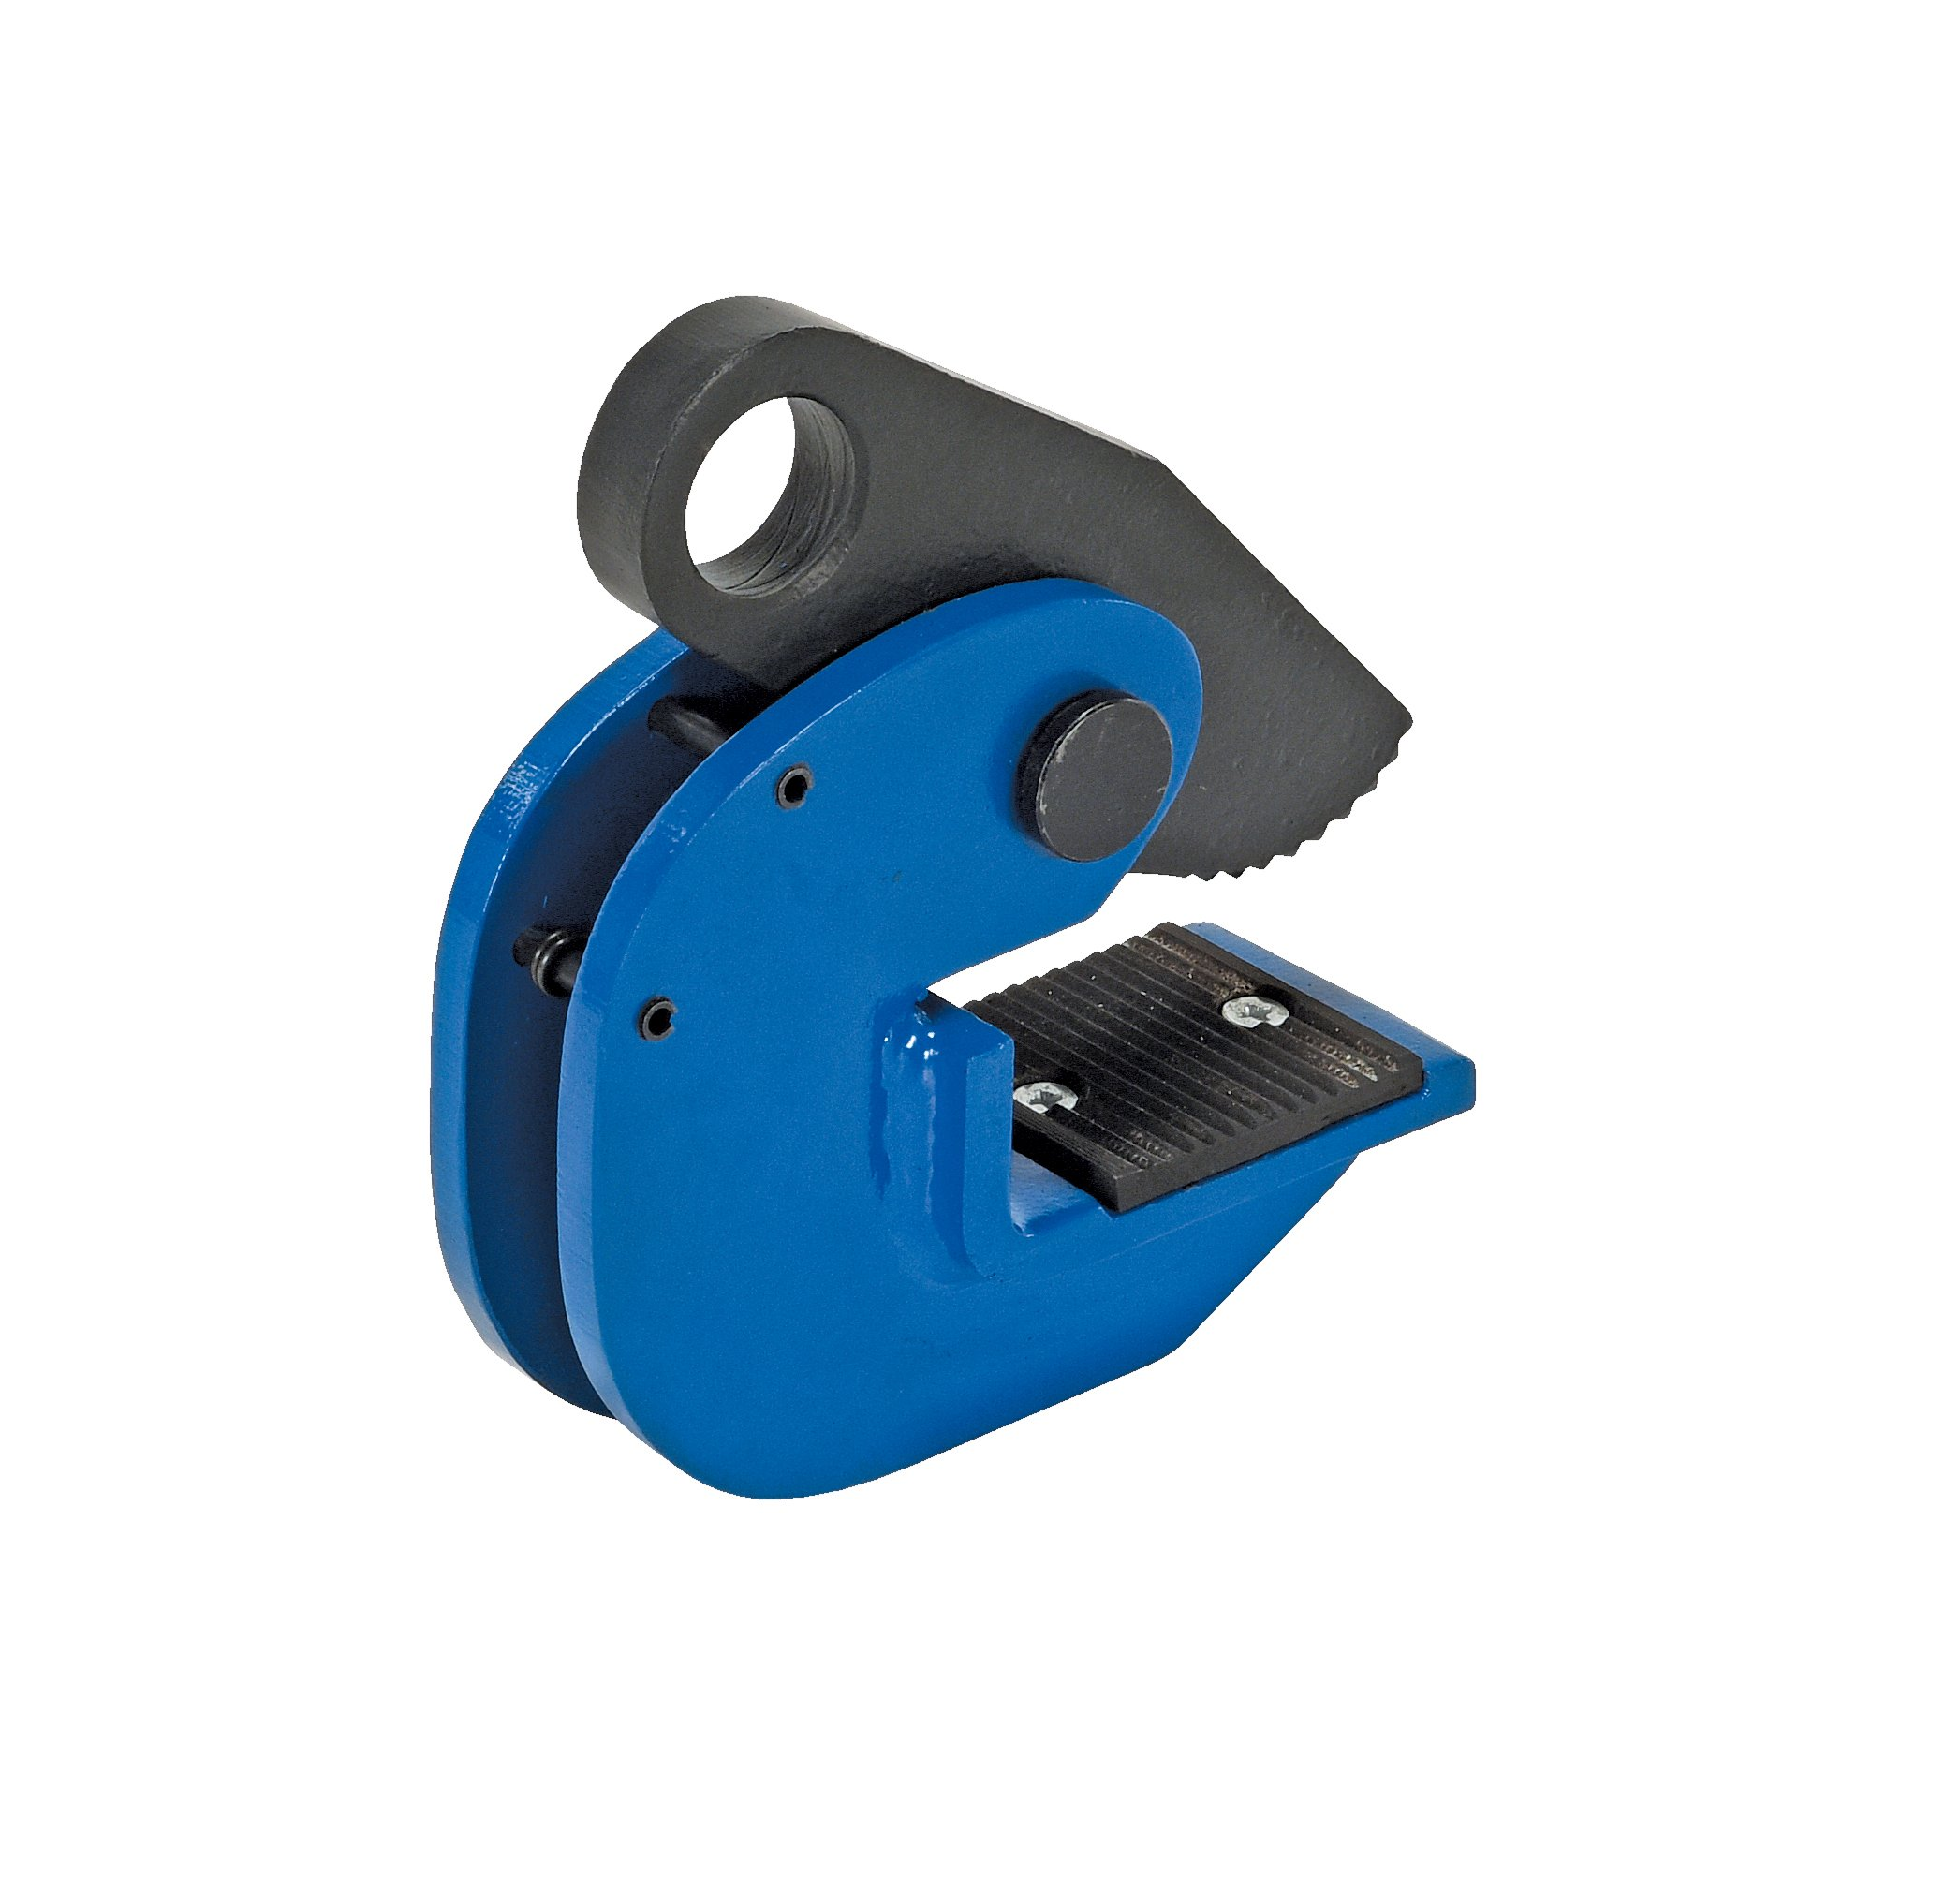 Vestil HPC-20 Horizontal Plate Lifting Clamp, Steel, 13/16'' Plate Thickness, 2000 lbs Working Load Limit, 1.2'' Bale Opening